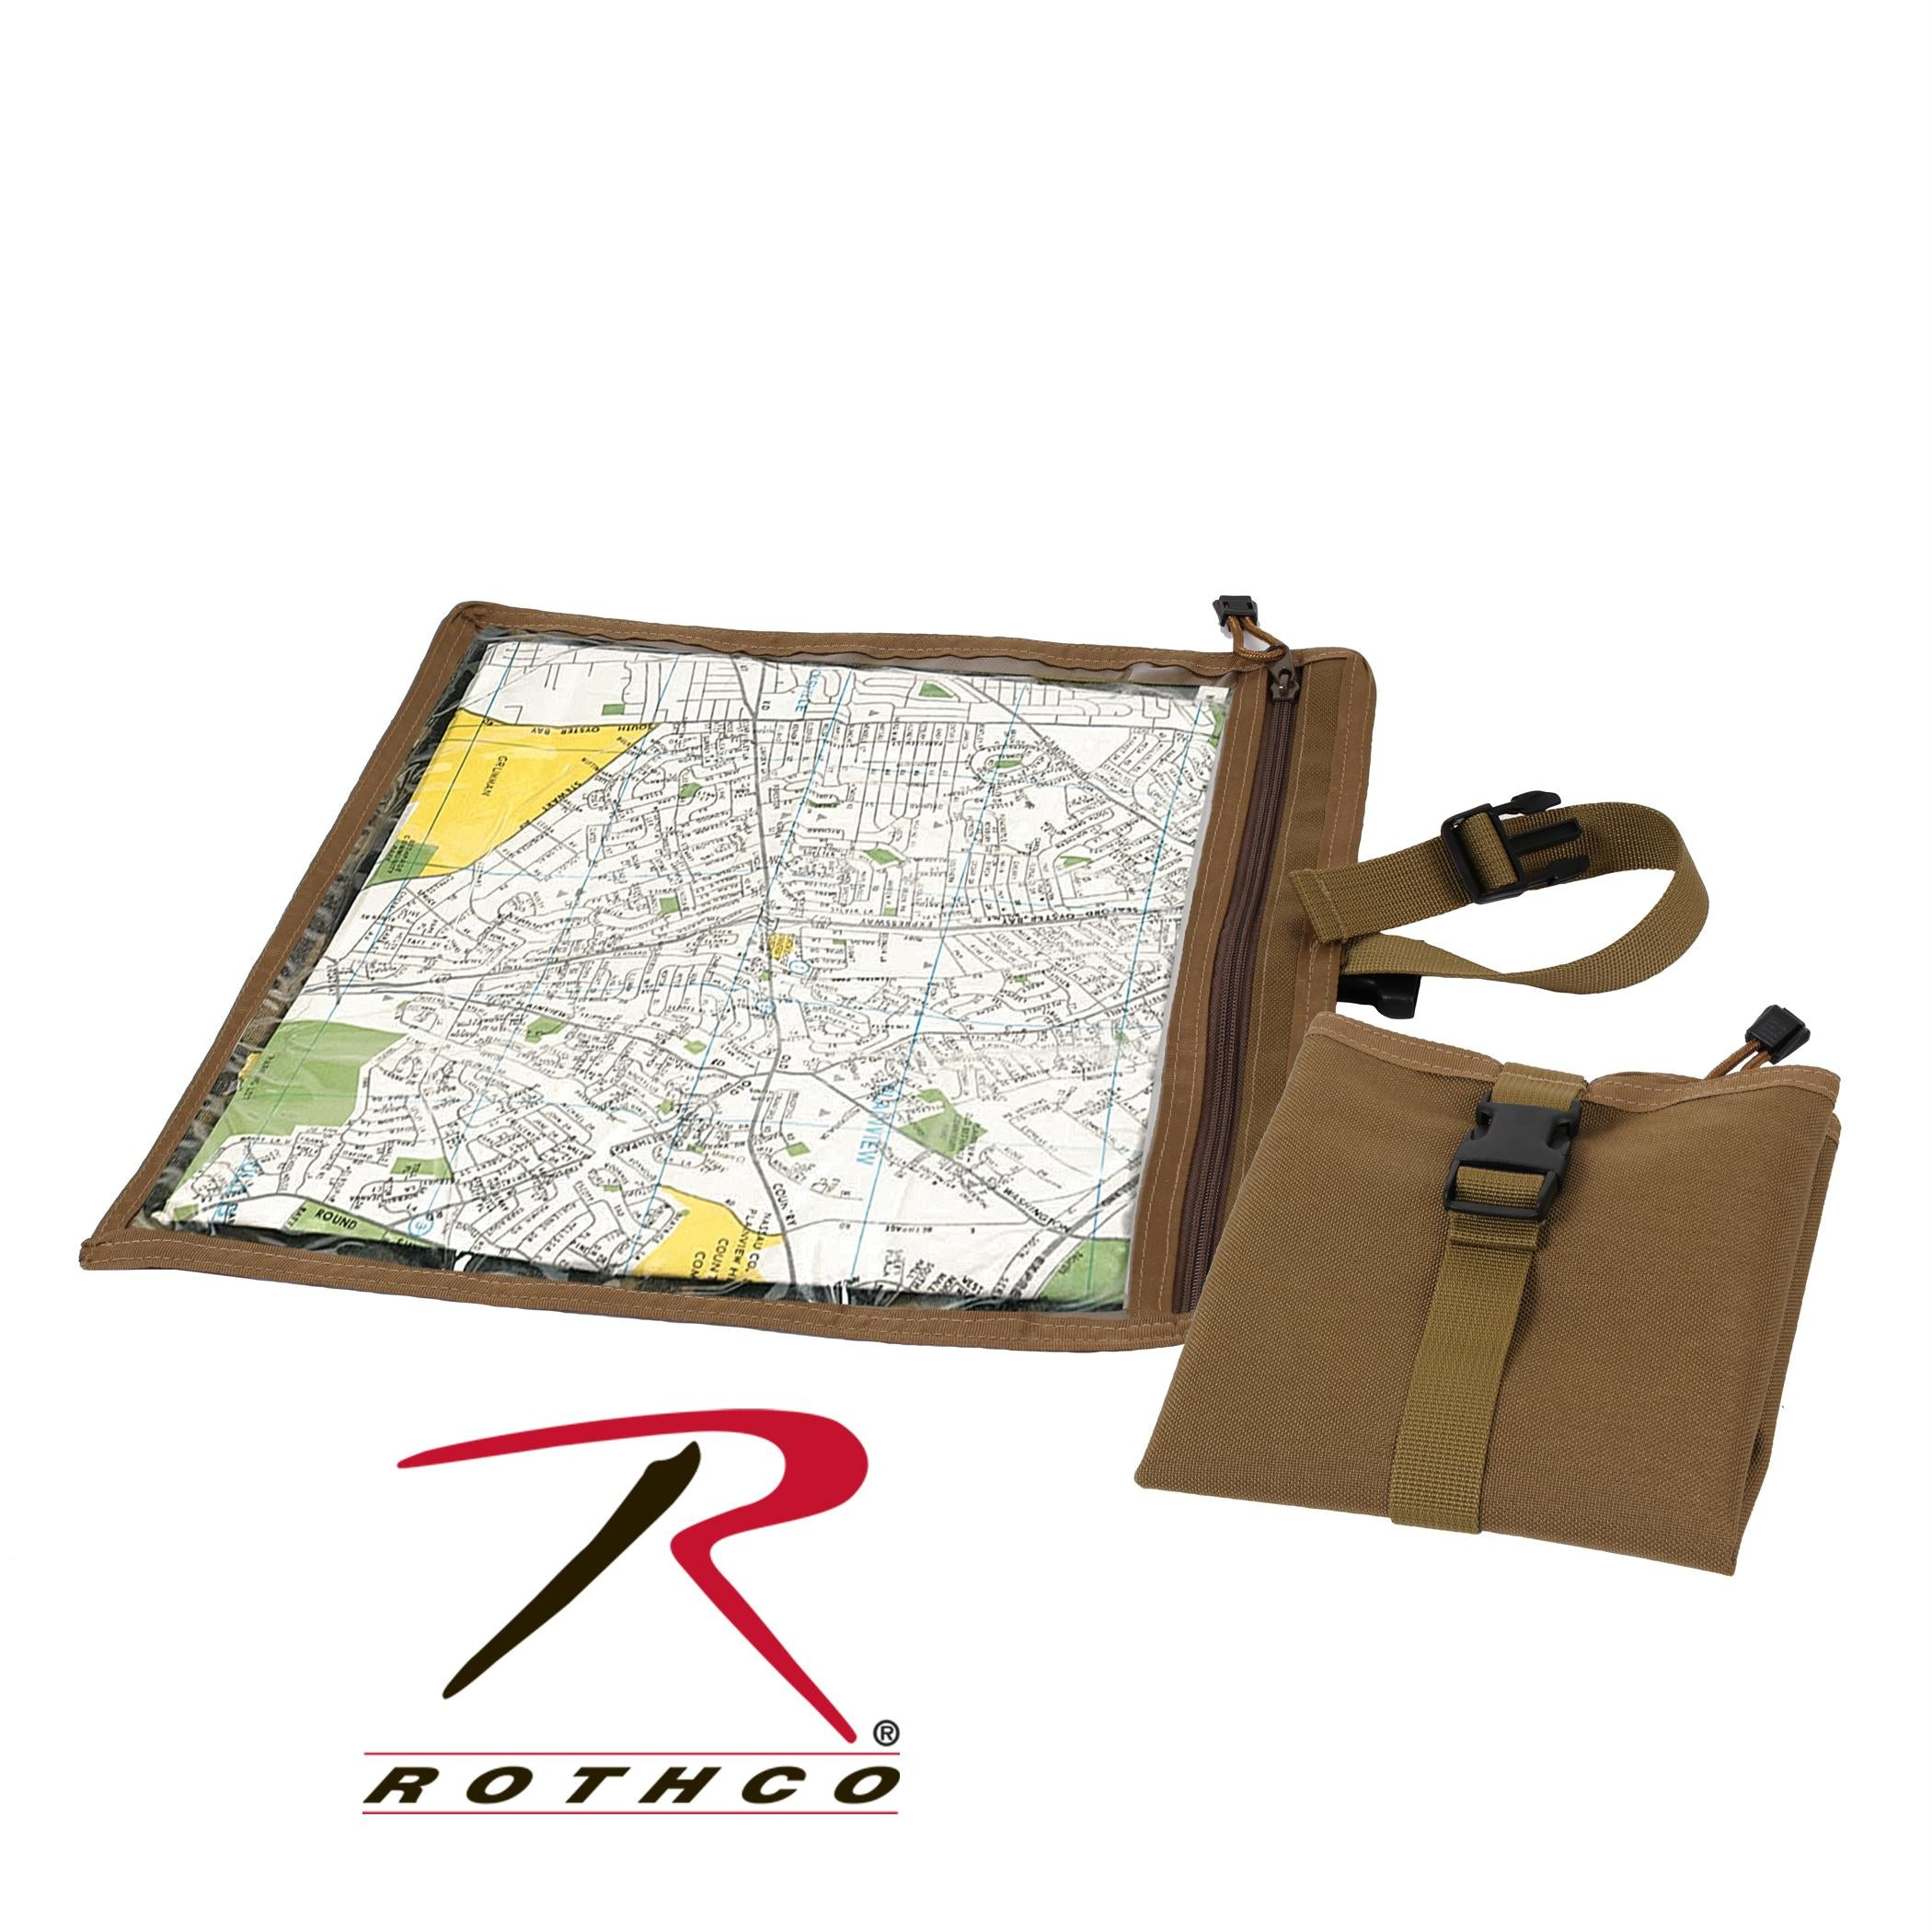 Rothco Map and Document Case - Coyote Brown